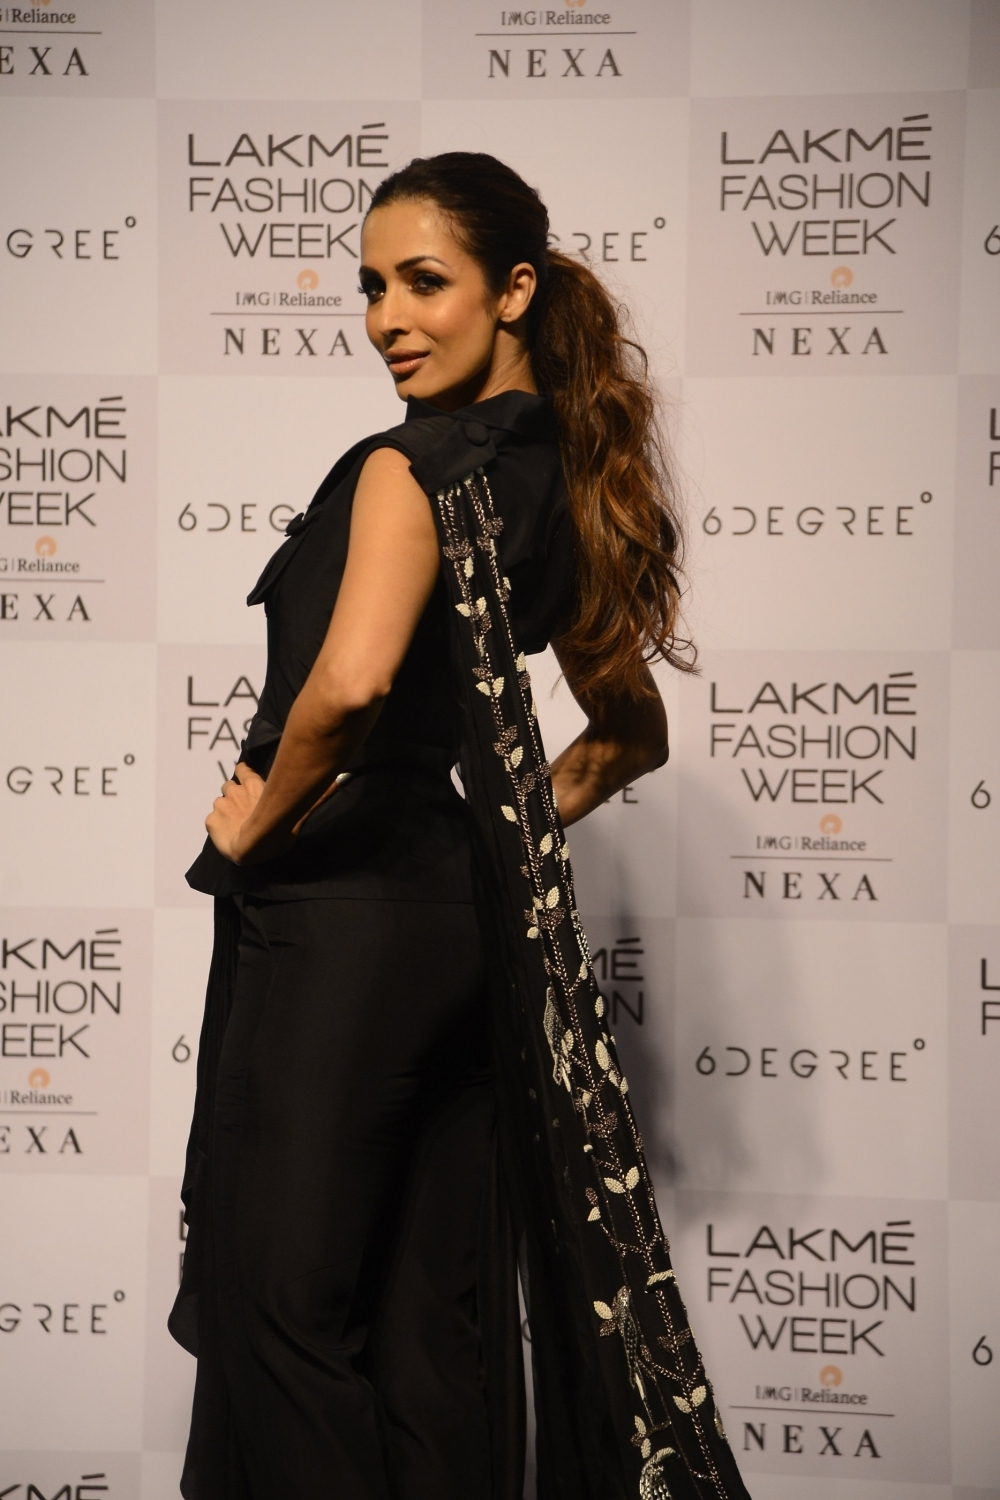 Mumbai: Actress Malaika Arora during the Lakme Fashion Week Summer/Resort 2018 in Mumbai on Feb 4, 2018. (Photo: IANS)